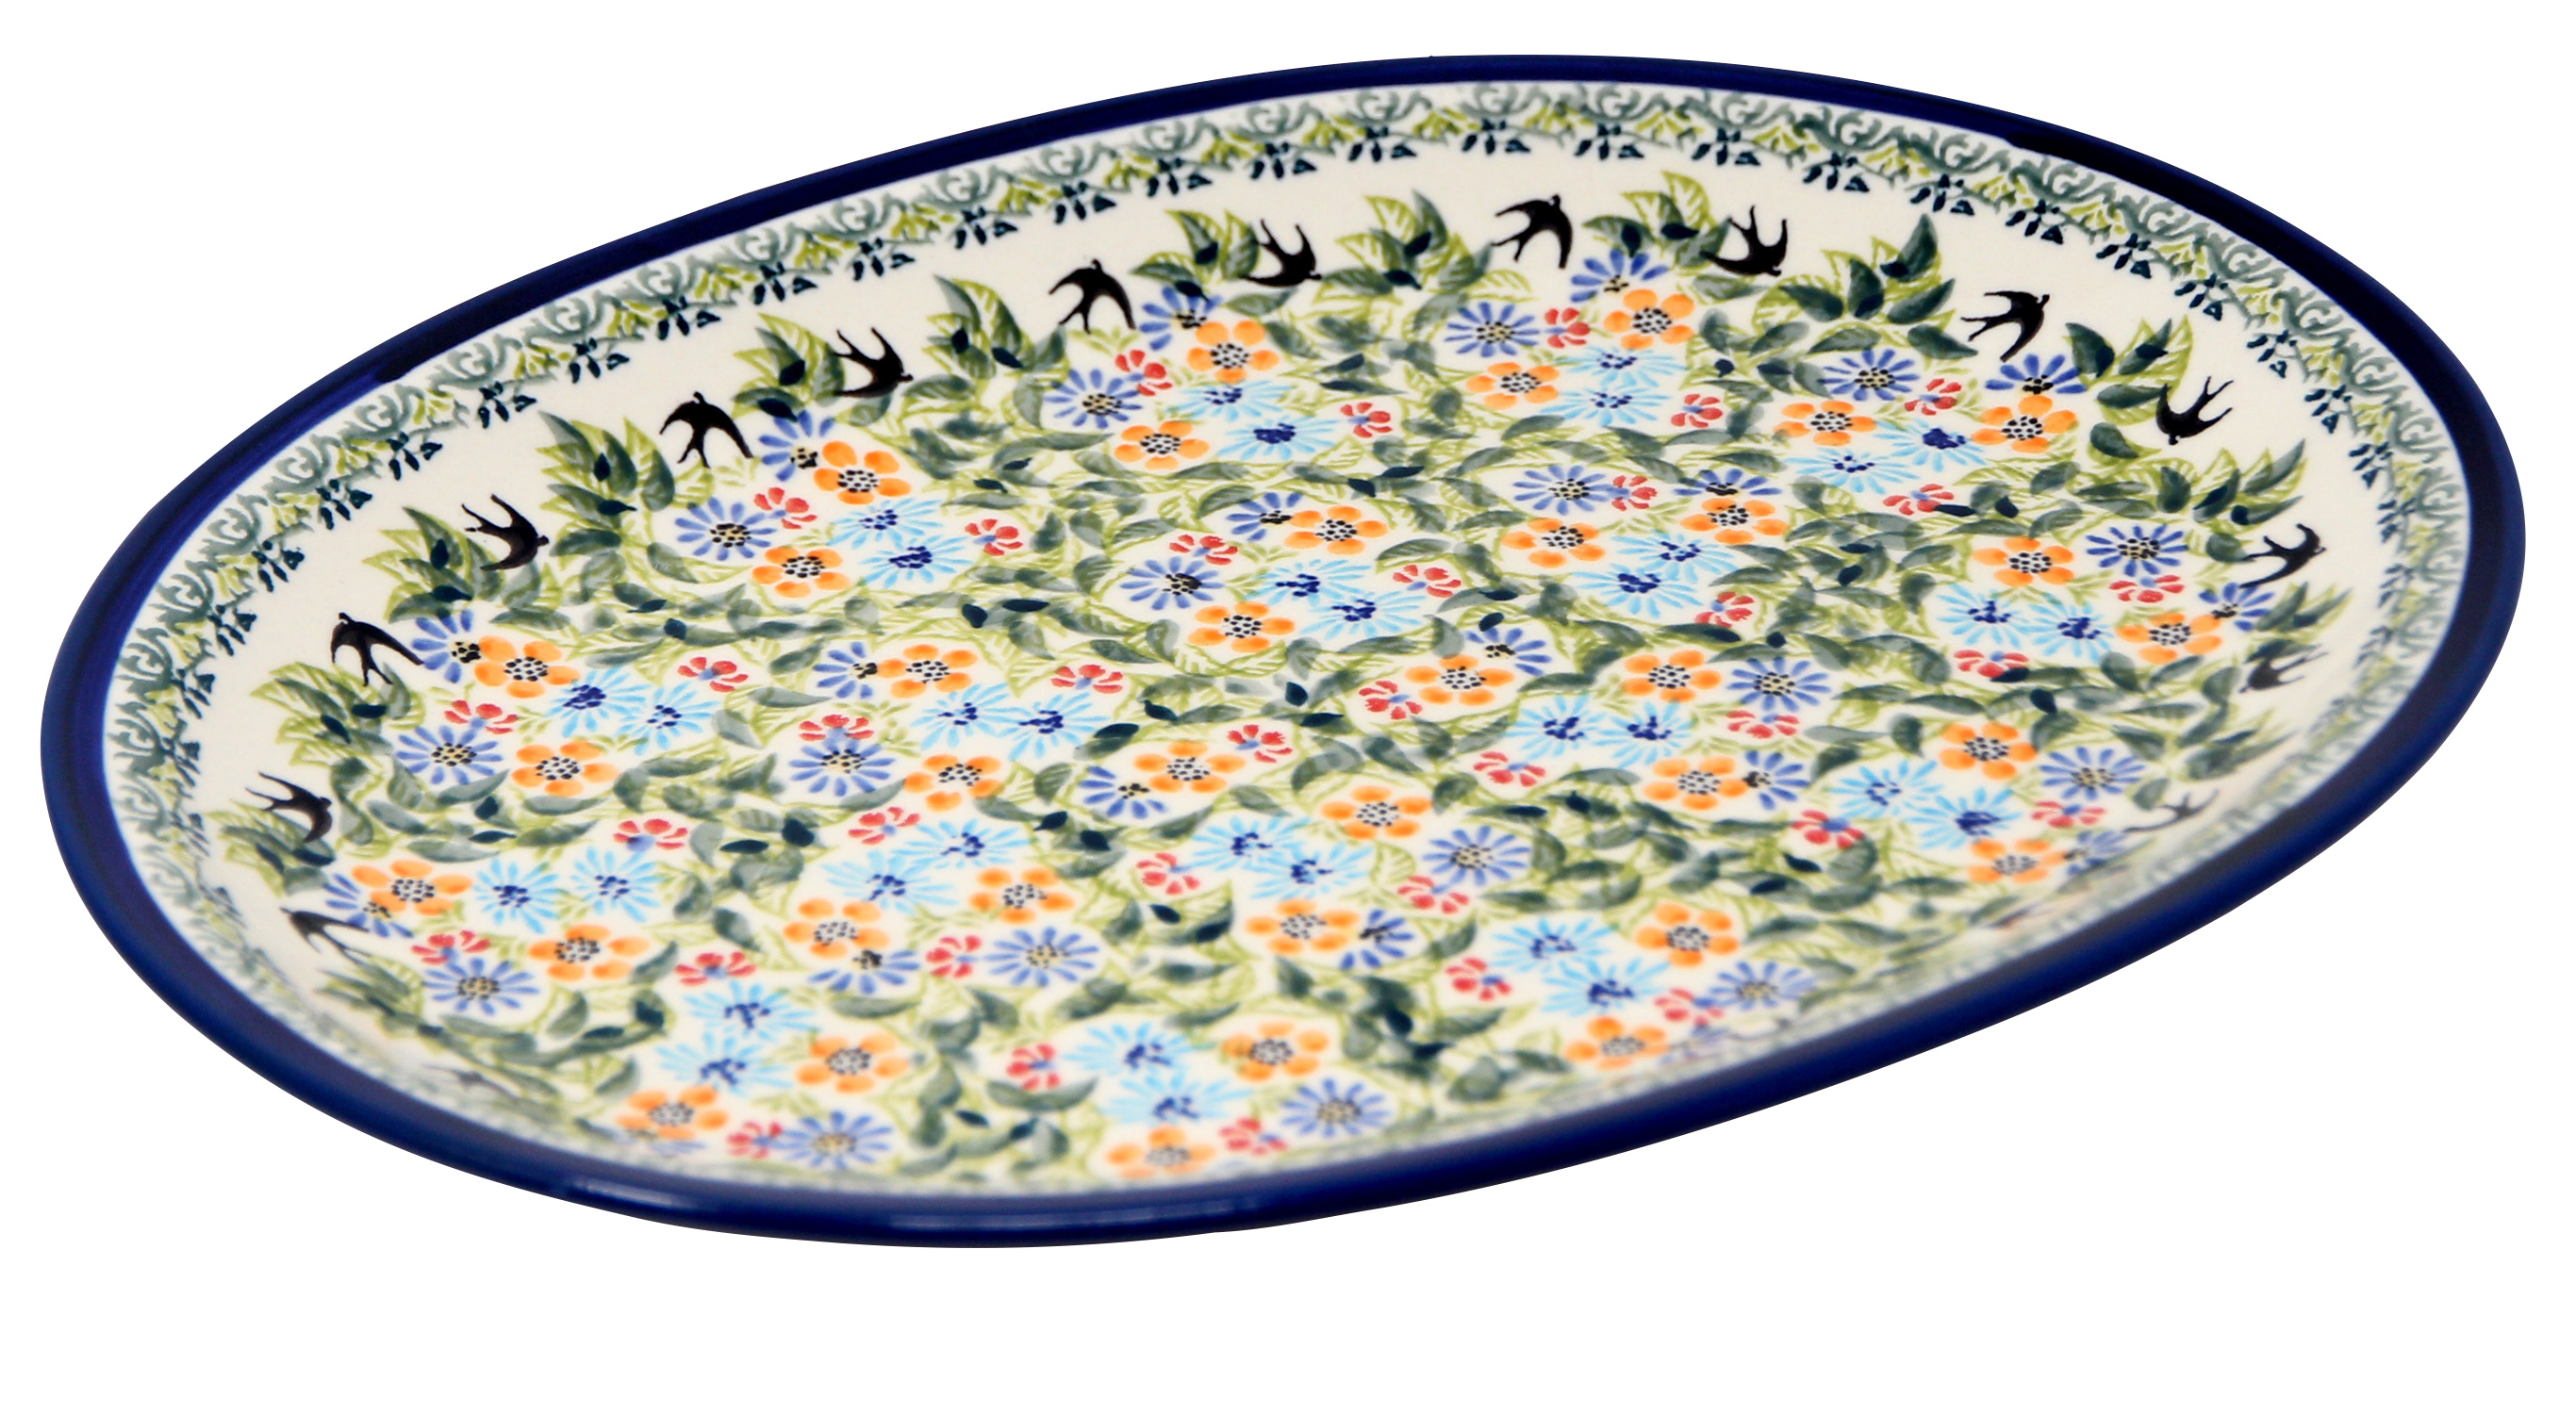 Large Serving Platter Polish Pottery from Zaklady in DU182 pattern